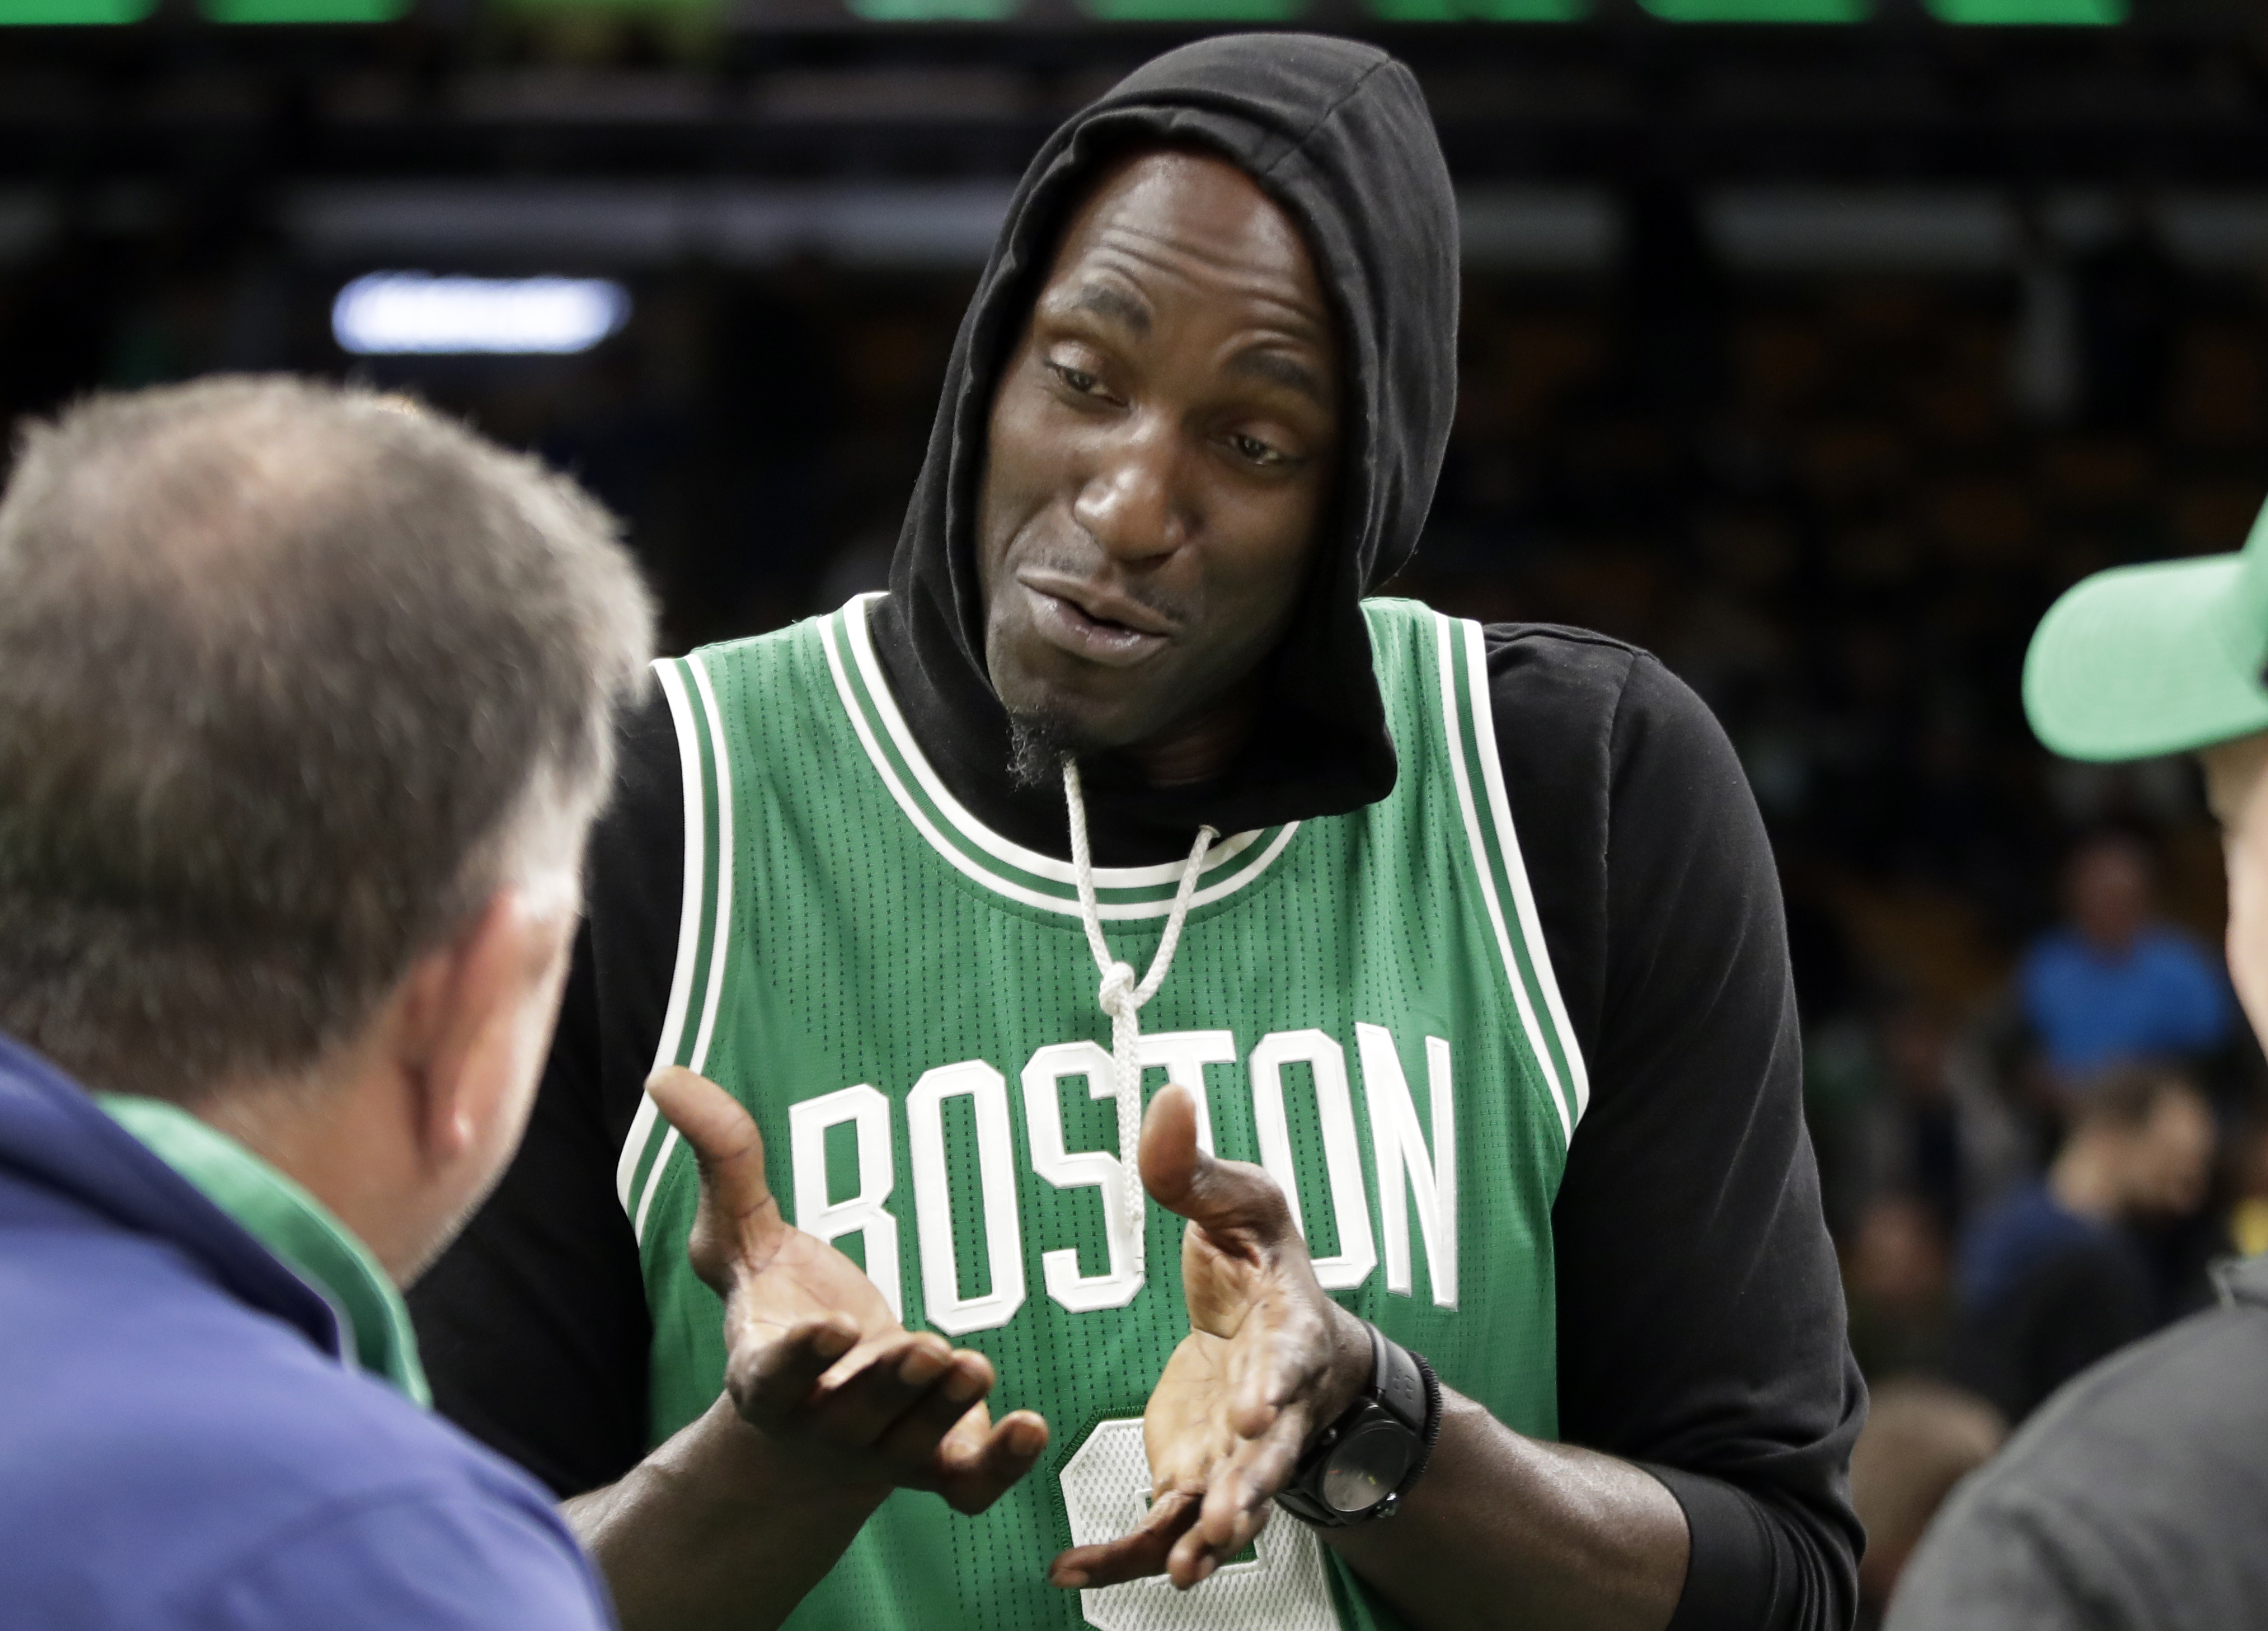 Kevin Garnett on Kyrie Irving Appearing to Stomp on Celtics Logo: 'You Can't Do That' thumbnail